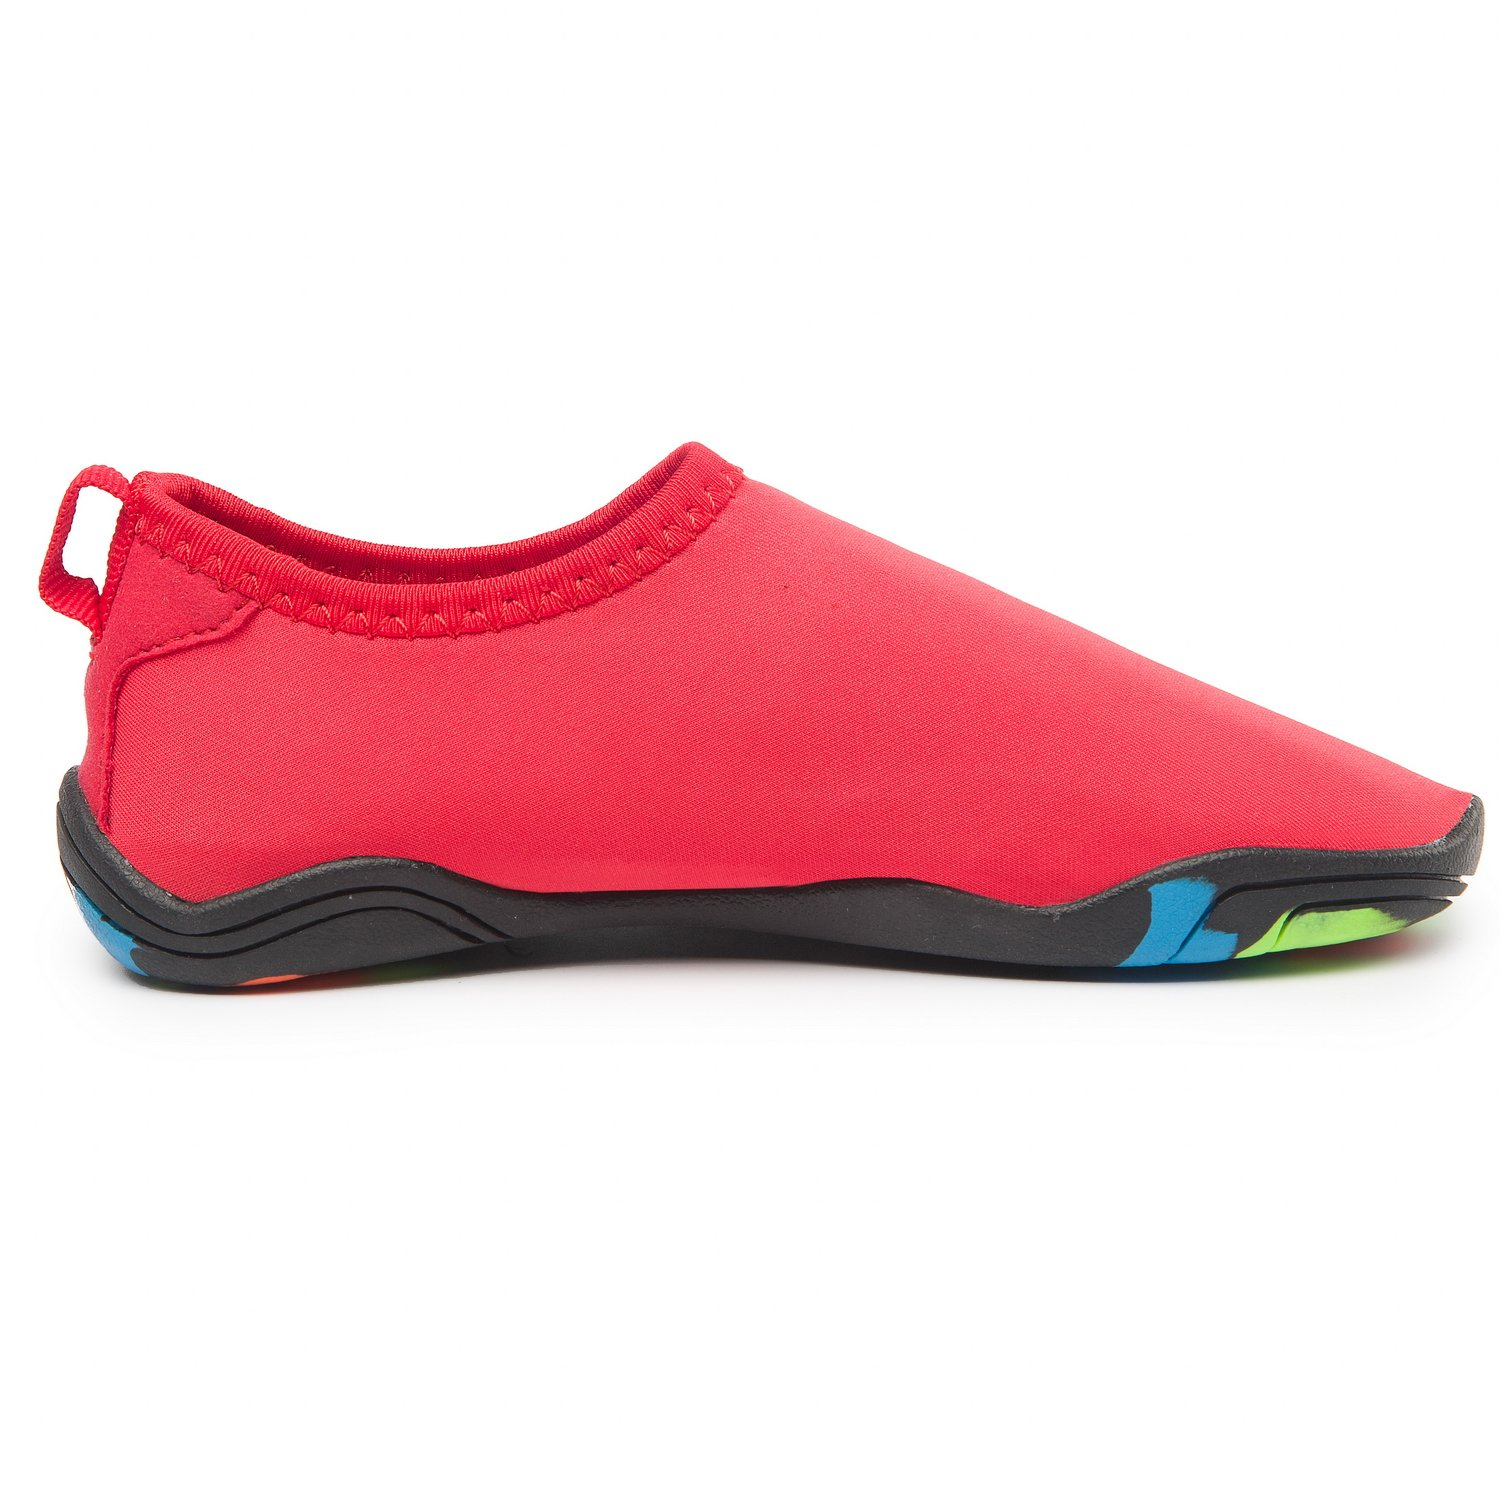 eslla Kids Water Shoes Slip-on Quick Drying Boys Girls Beach Swimming Water Sports Aqua Shoes AS007042A